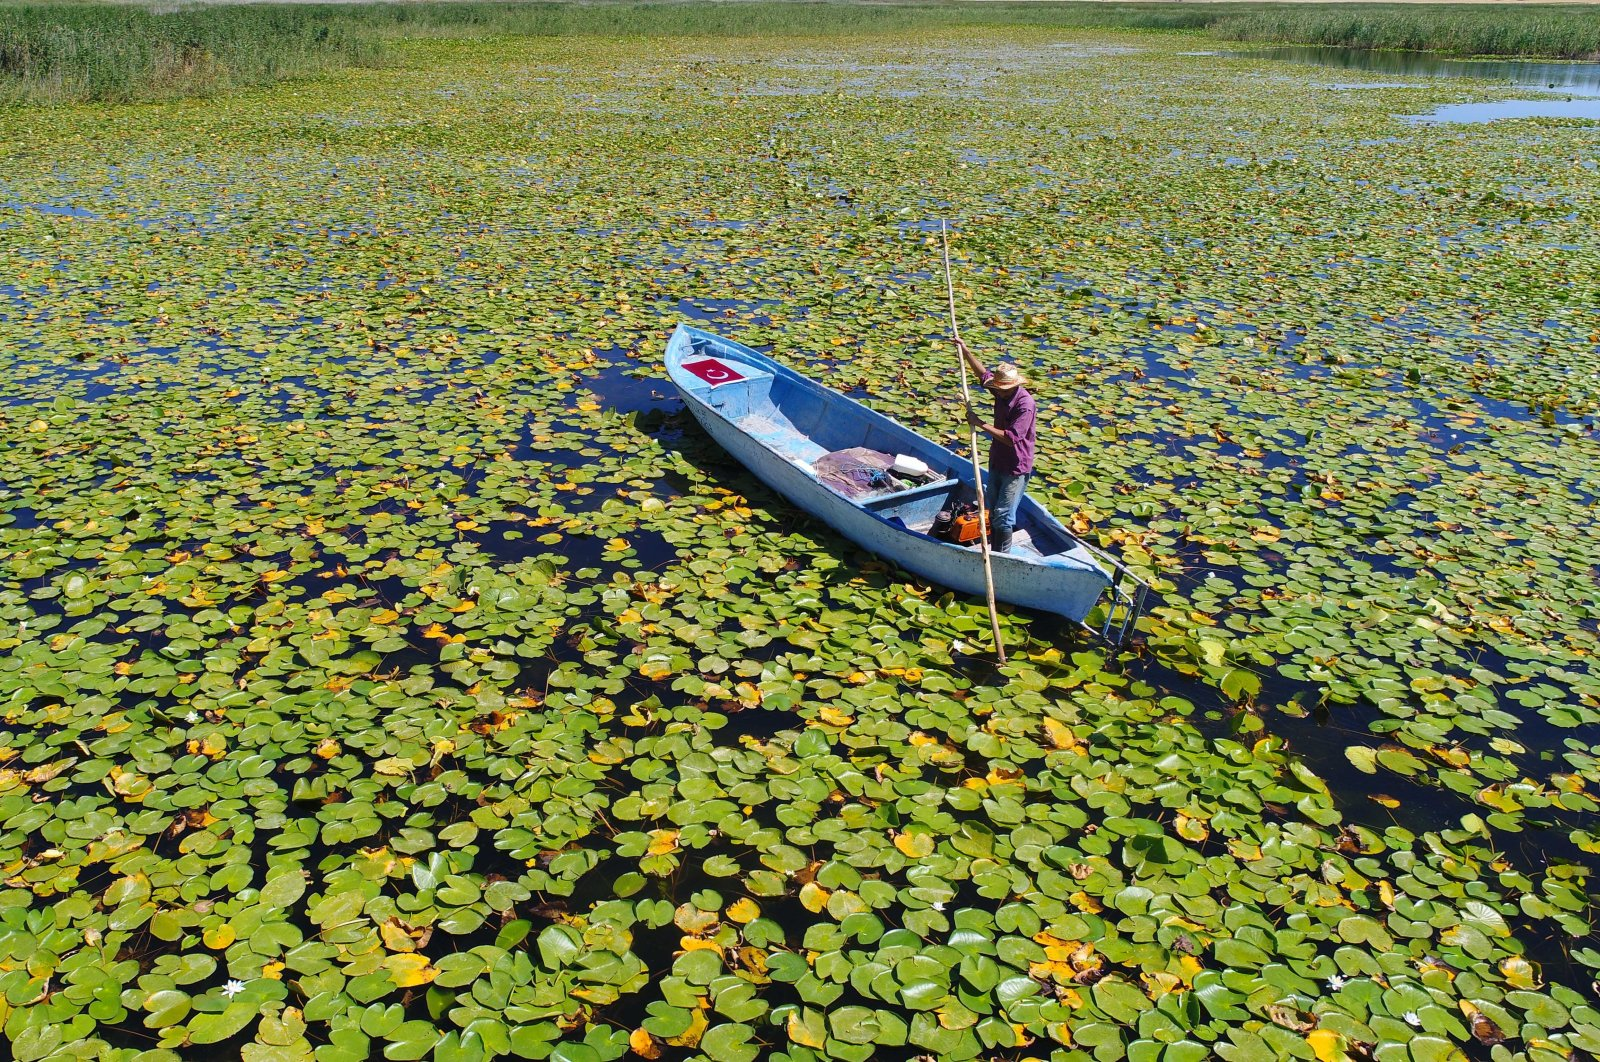 A fisherman rides on his boat through a sea of water lilies in Lake Beyşehir, Konya, Aug. 20, 2020. (DHA Photo)